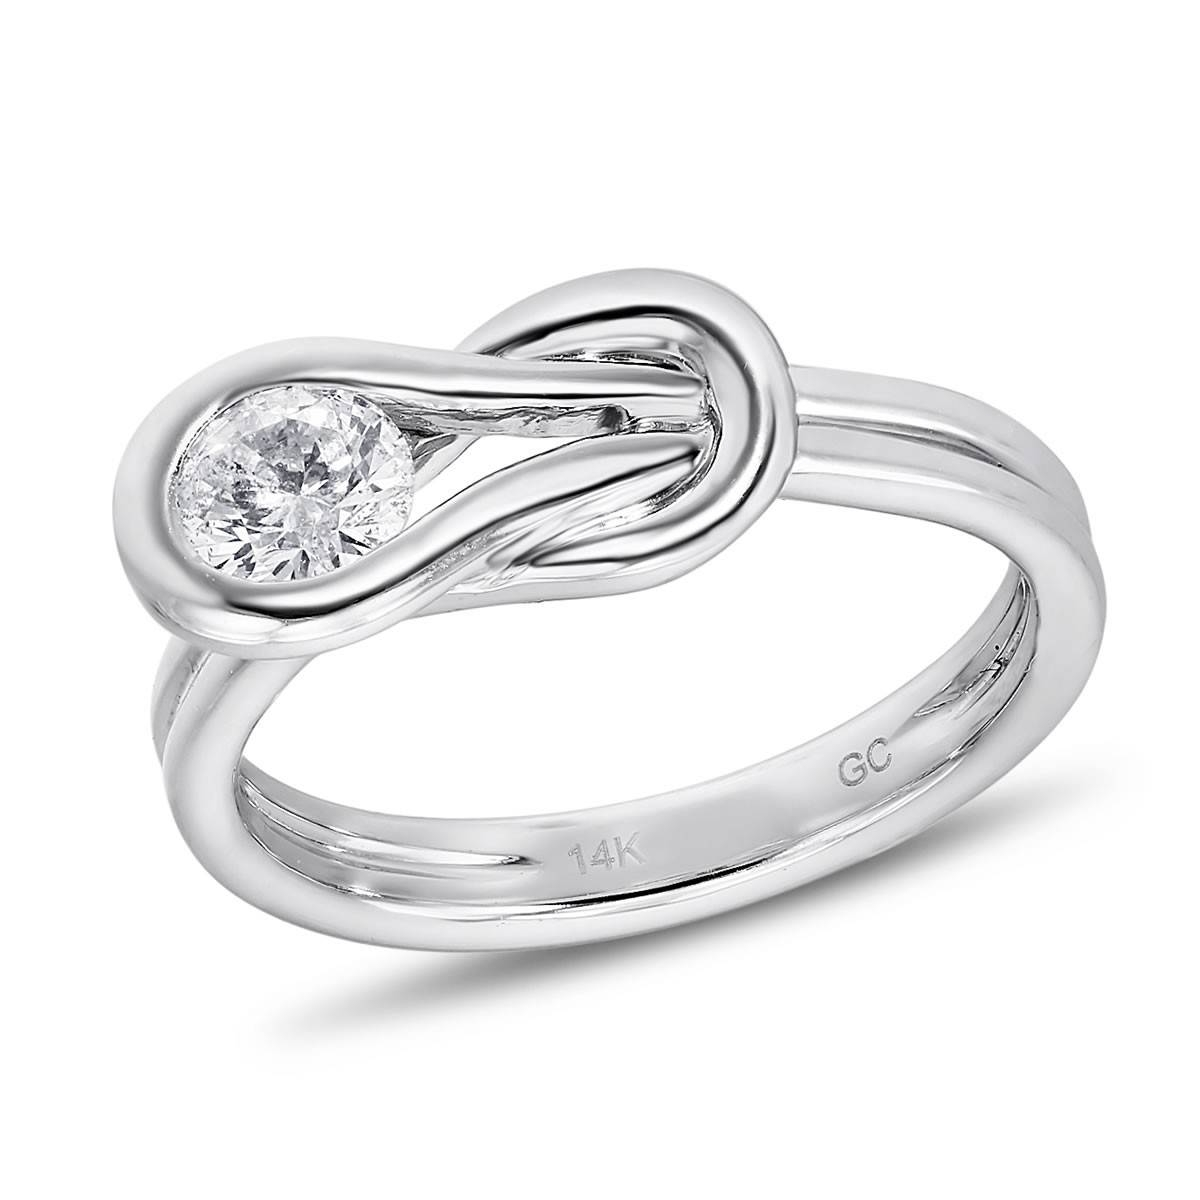 Love Knot Collection, 14K White Gold Round I2 Diamond Ring, 1/2 Pertaining To Love Knot Engagement Rings (View 11 of 15)